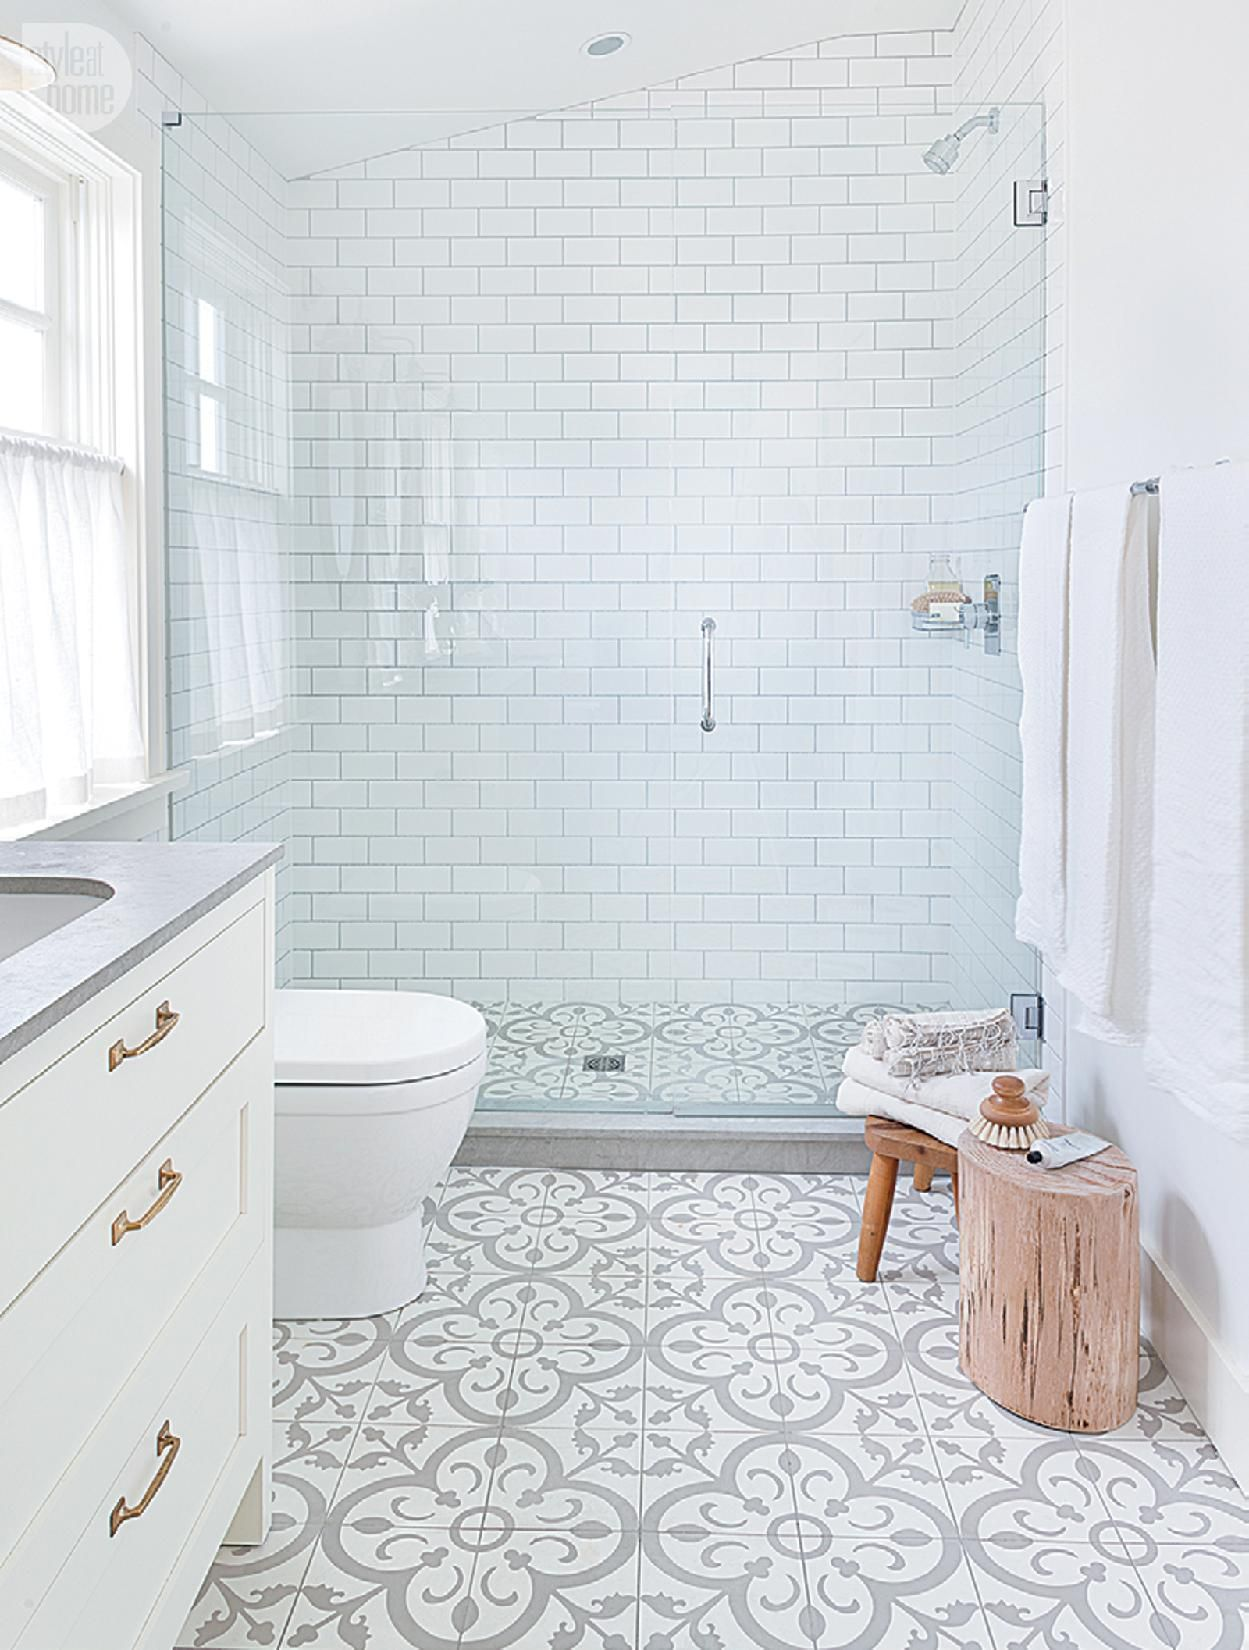 25 Best Bathroom Tiles Design Ideas You Never Knew You Wanted ...